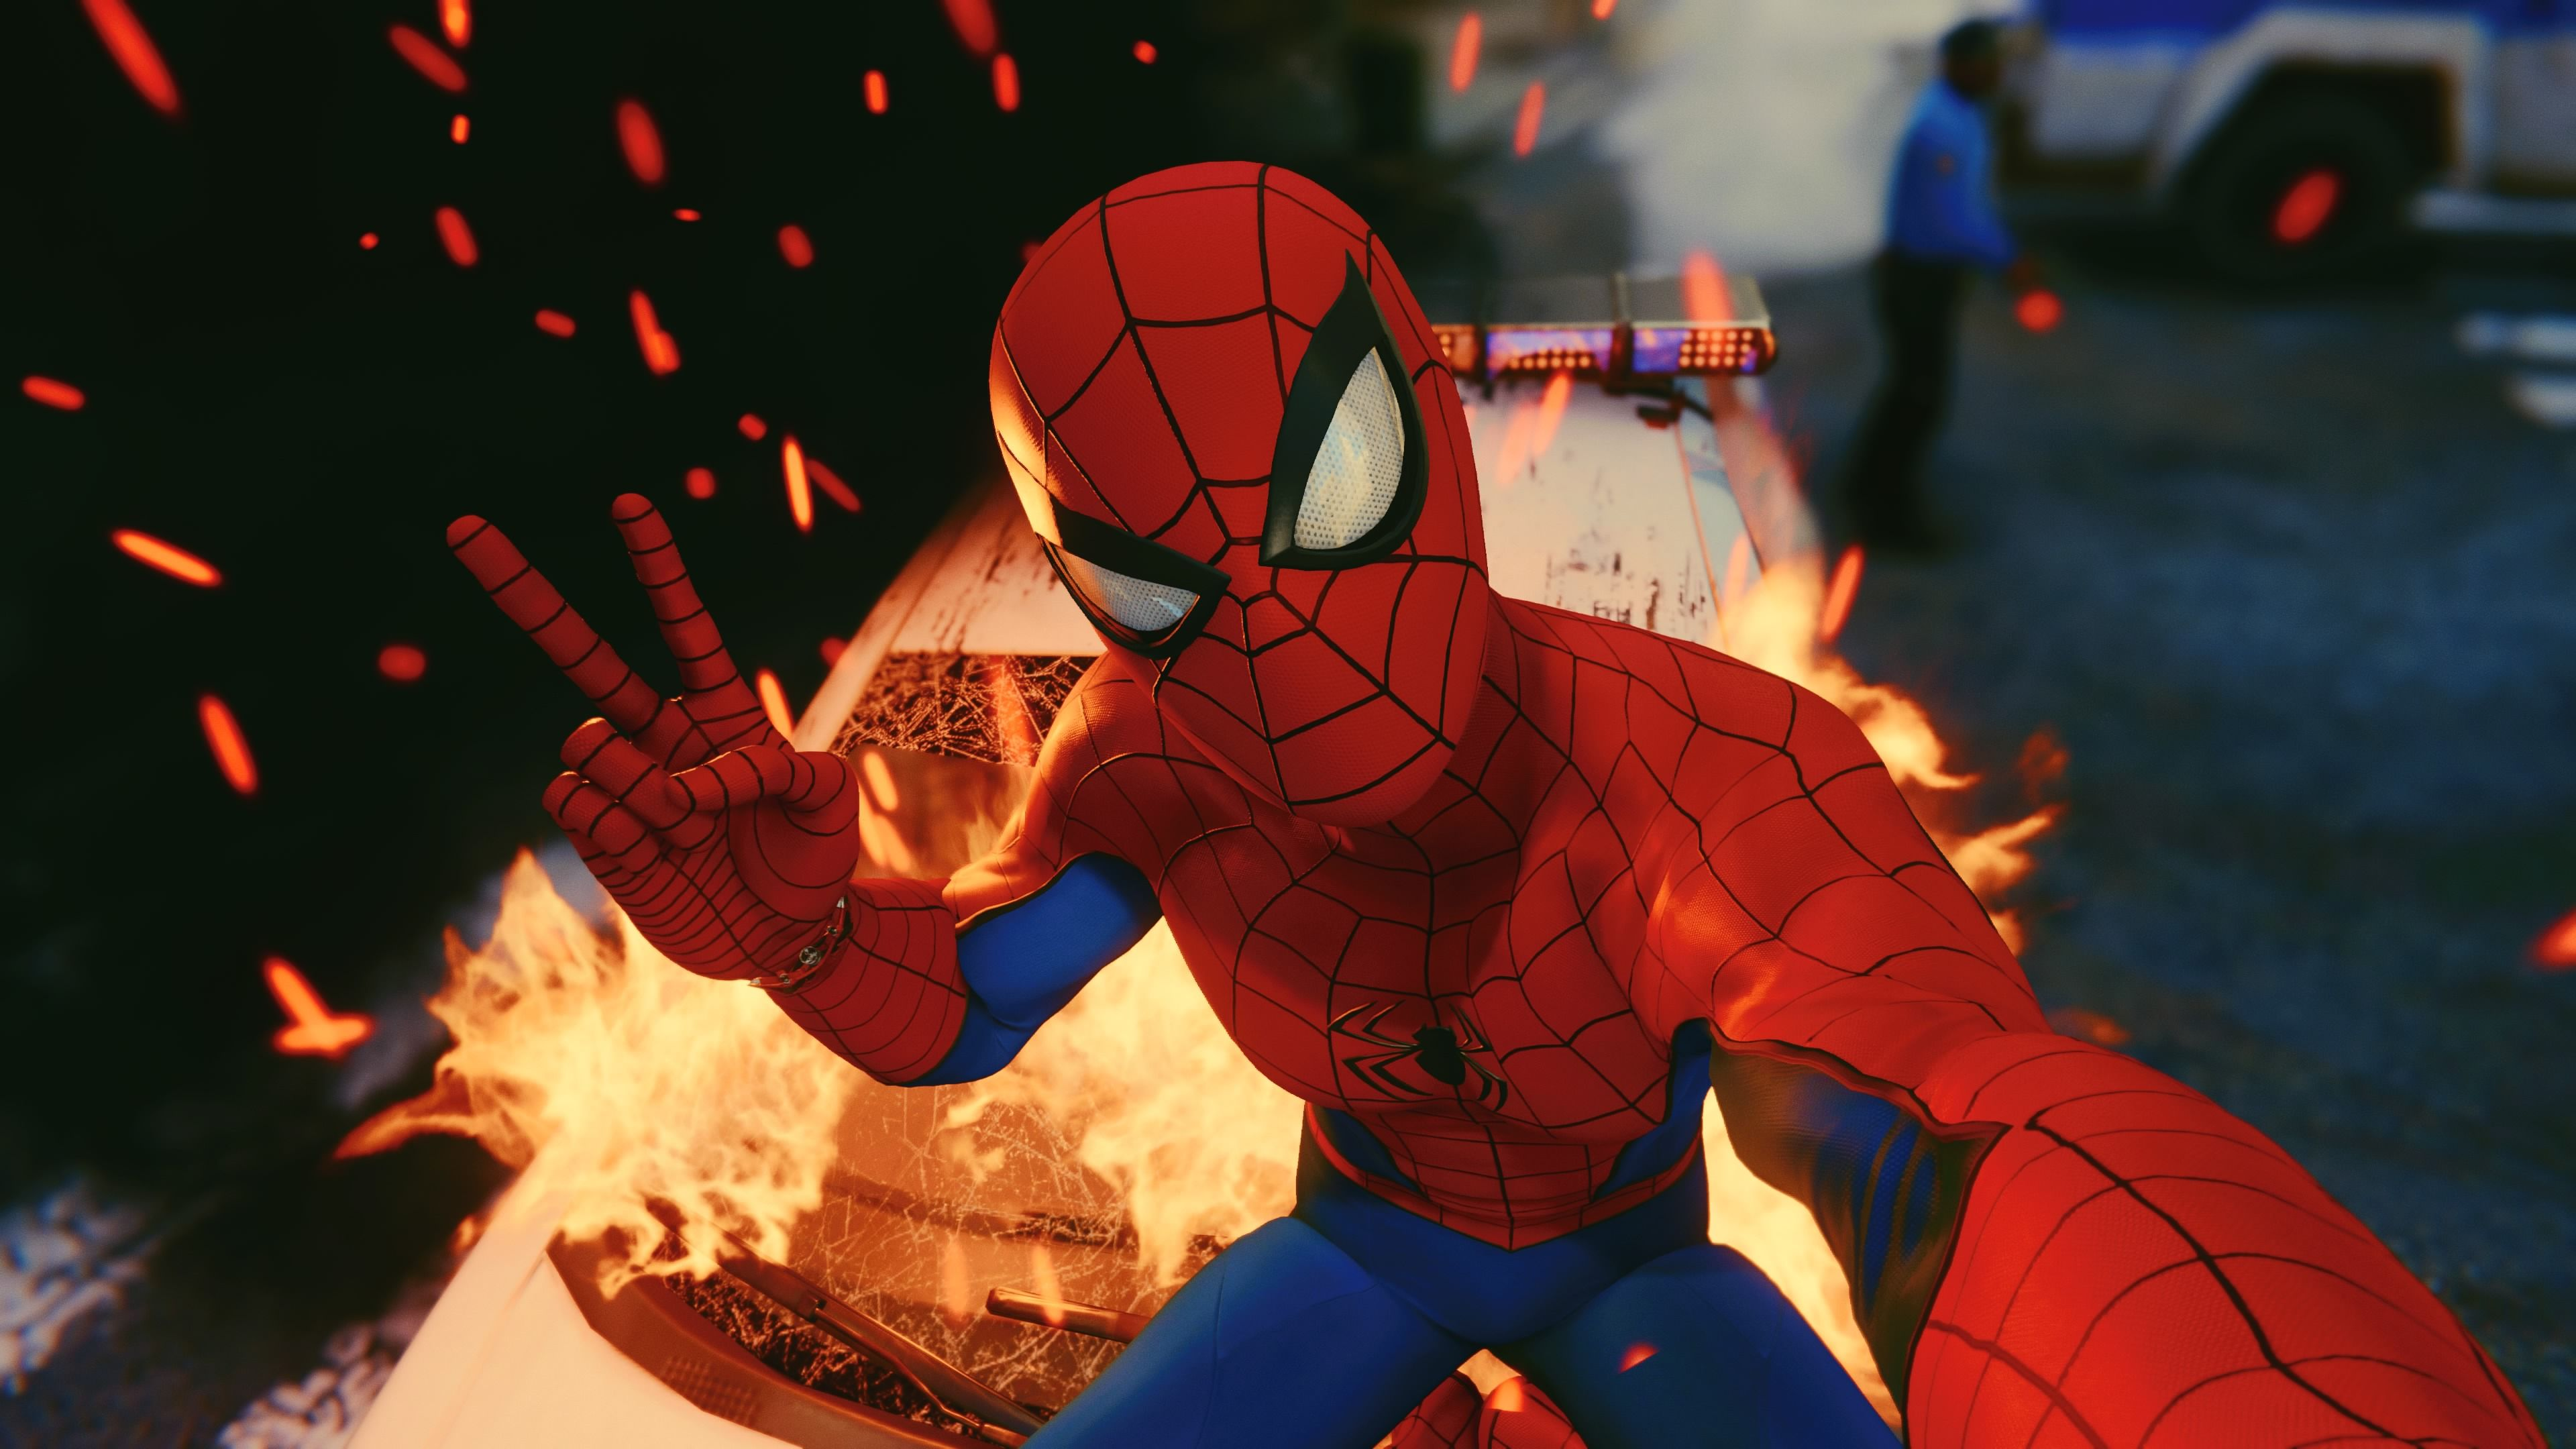 Spiderman Taking Selfie Ps4 4k 2018 superheroes wallpapers 3840x2160